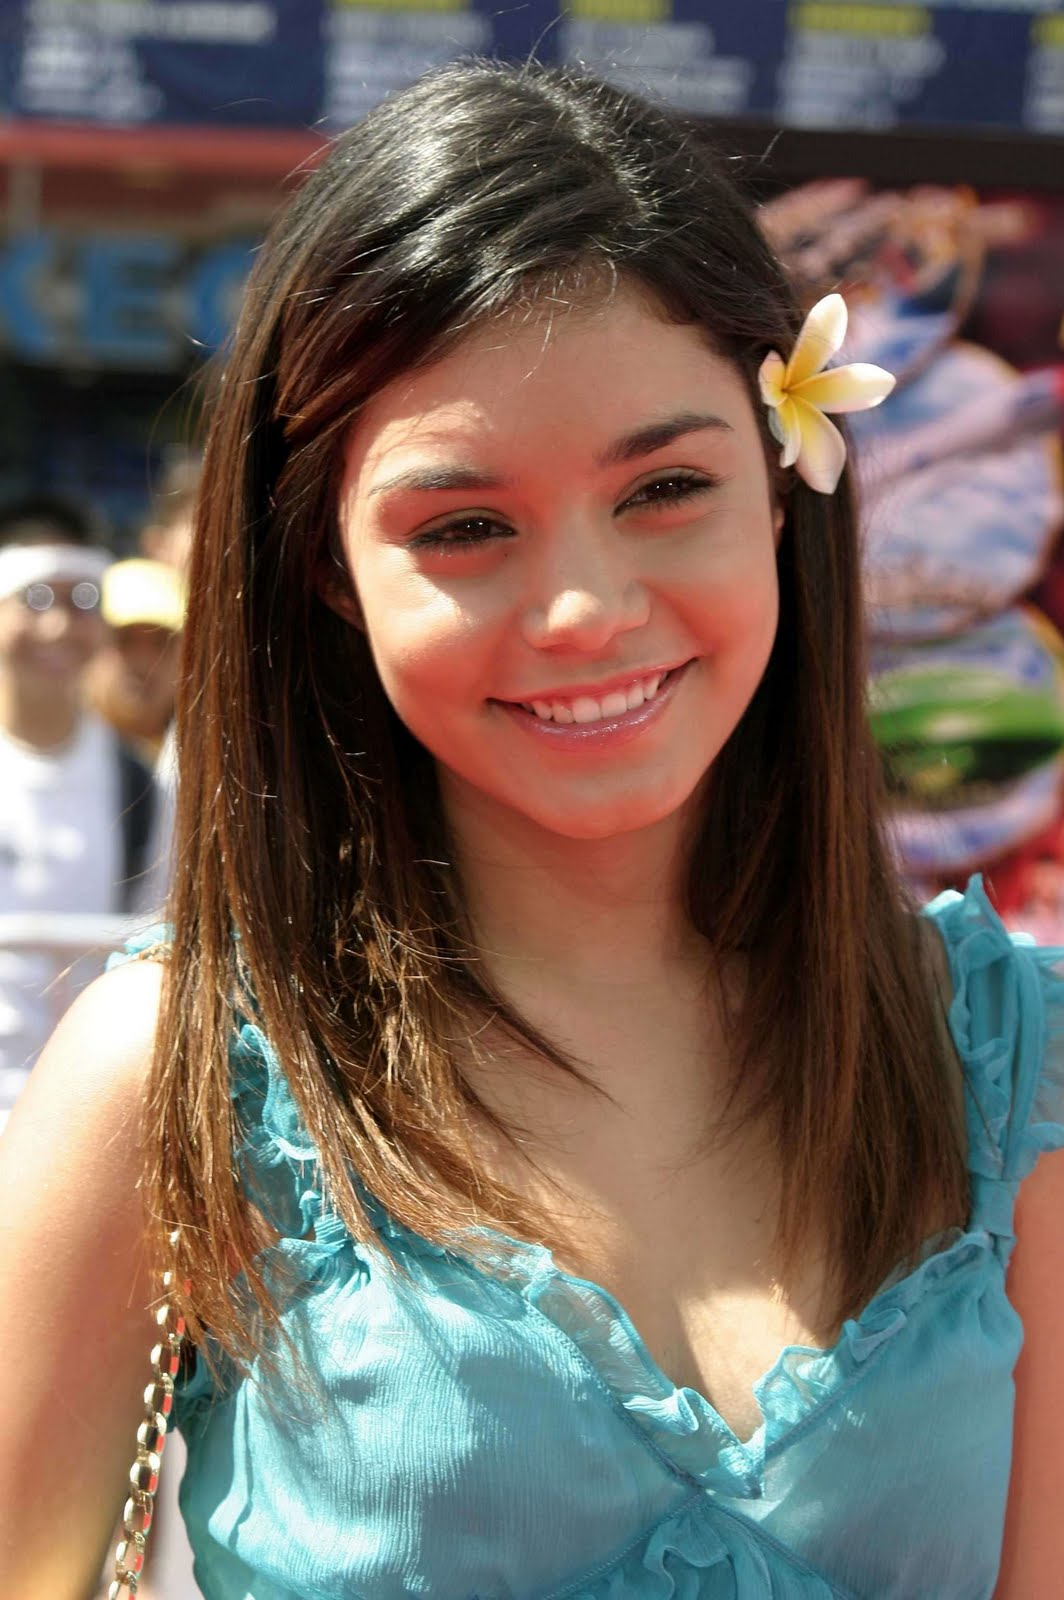 Pictures Of Vanessa Hudgens Naked 13